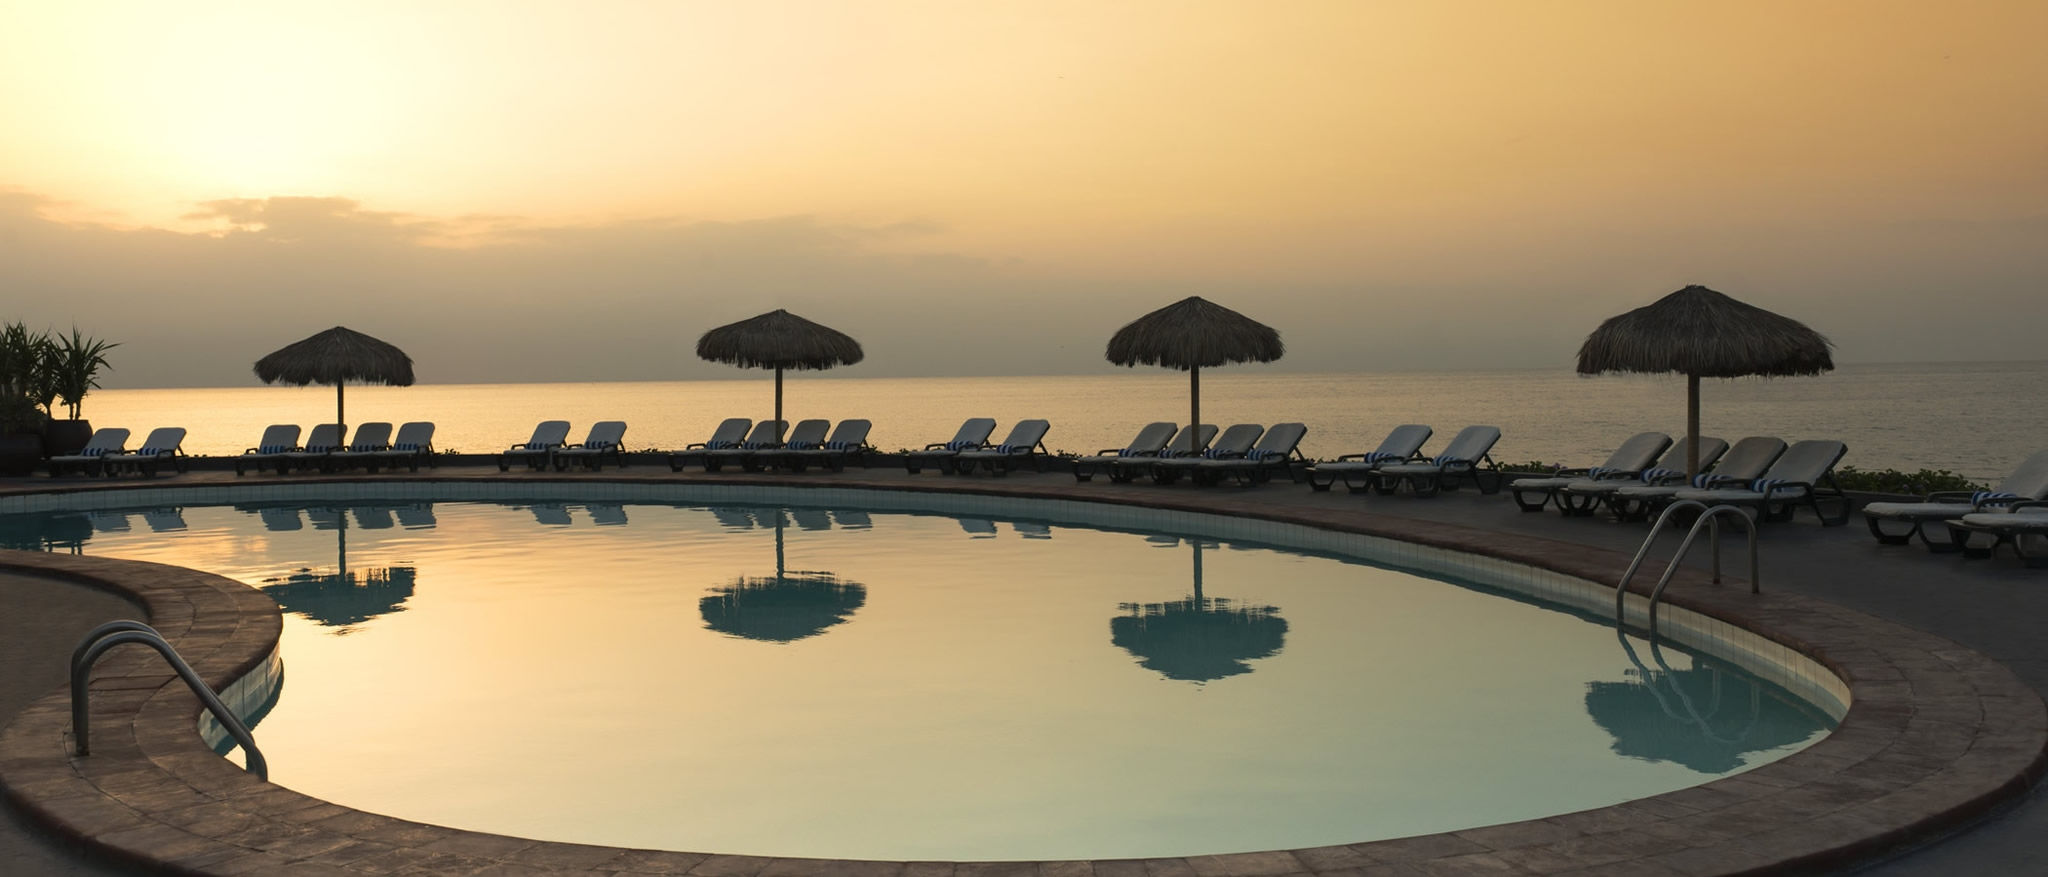 Sheraton Djibouti Hotel sunset Pool View.